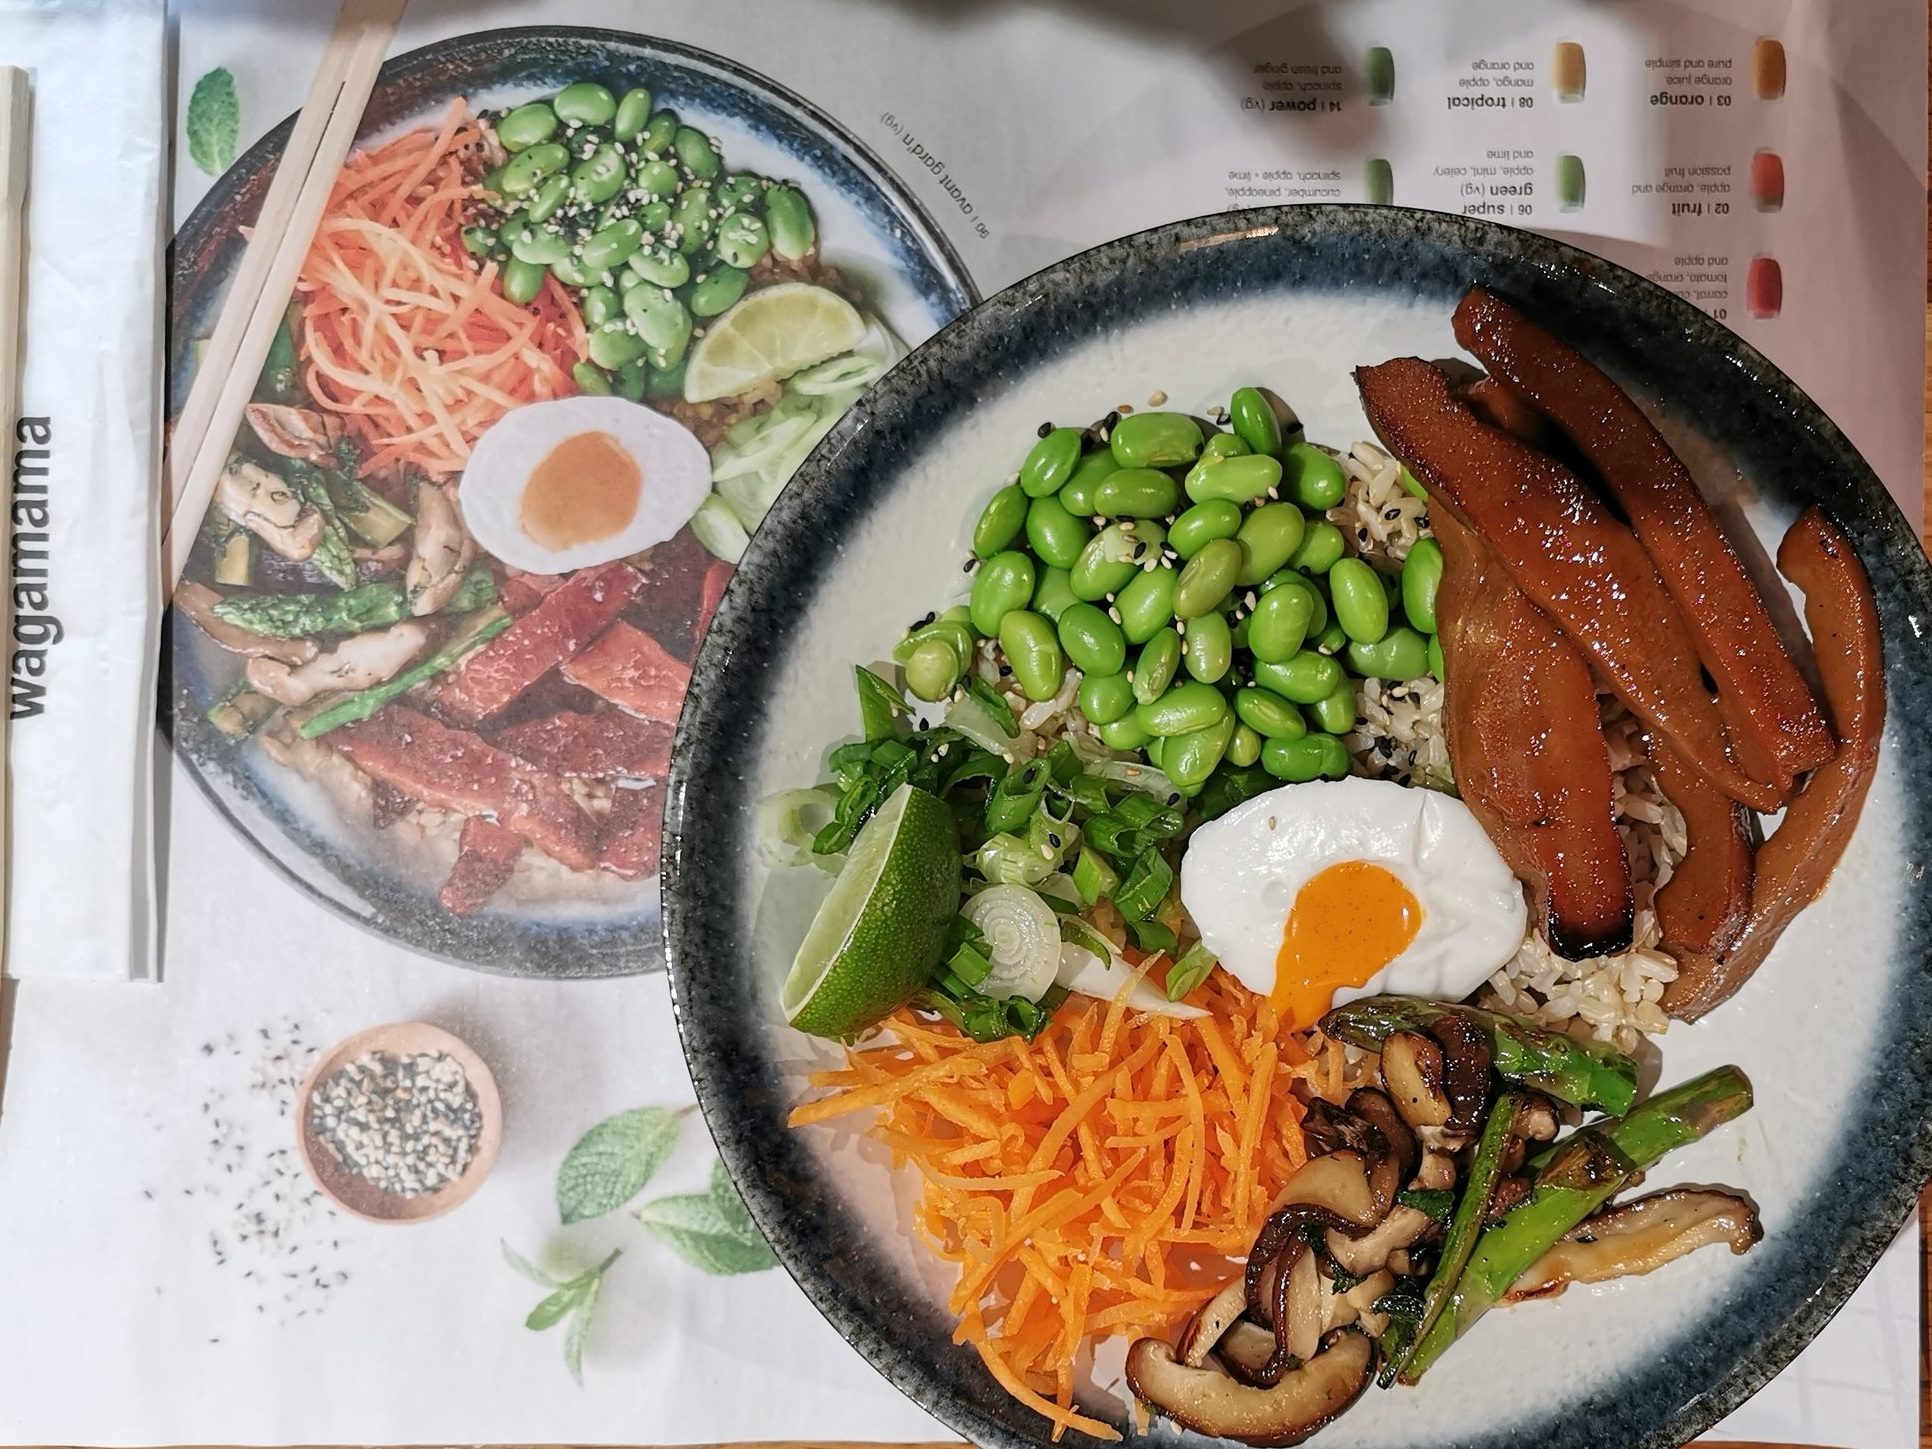 Vegan options at Wagamama